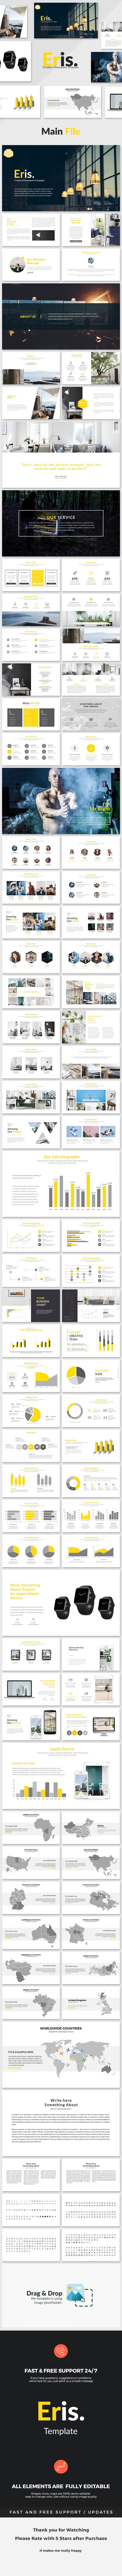 Eris - Creative Powerpoint Template  #marketing #clean • Download ➝ https://graphicriver.net/item/eris-creative-powerpoint-template/18138869?ref=pxcr